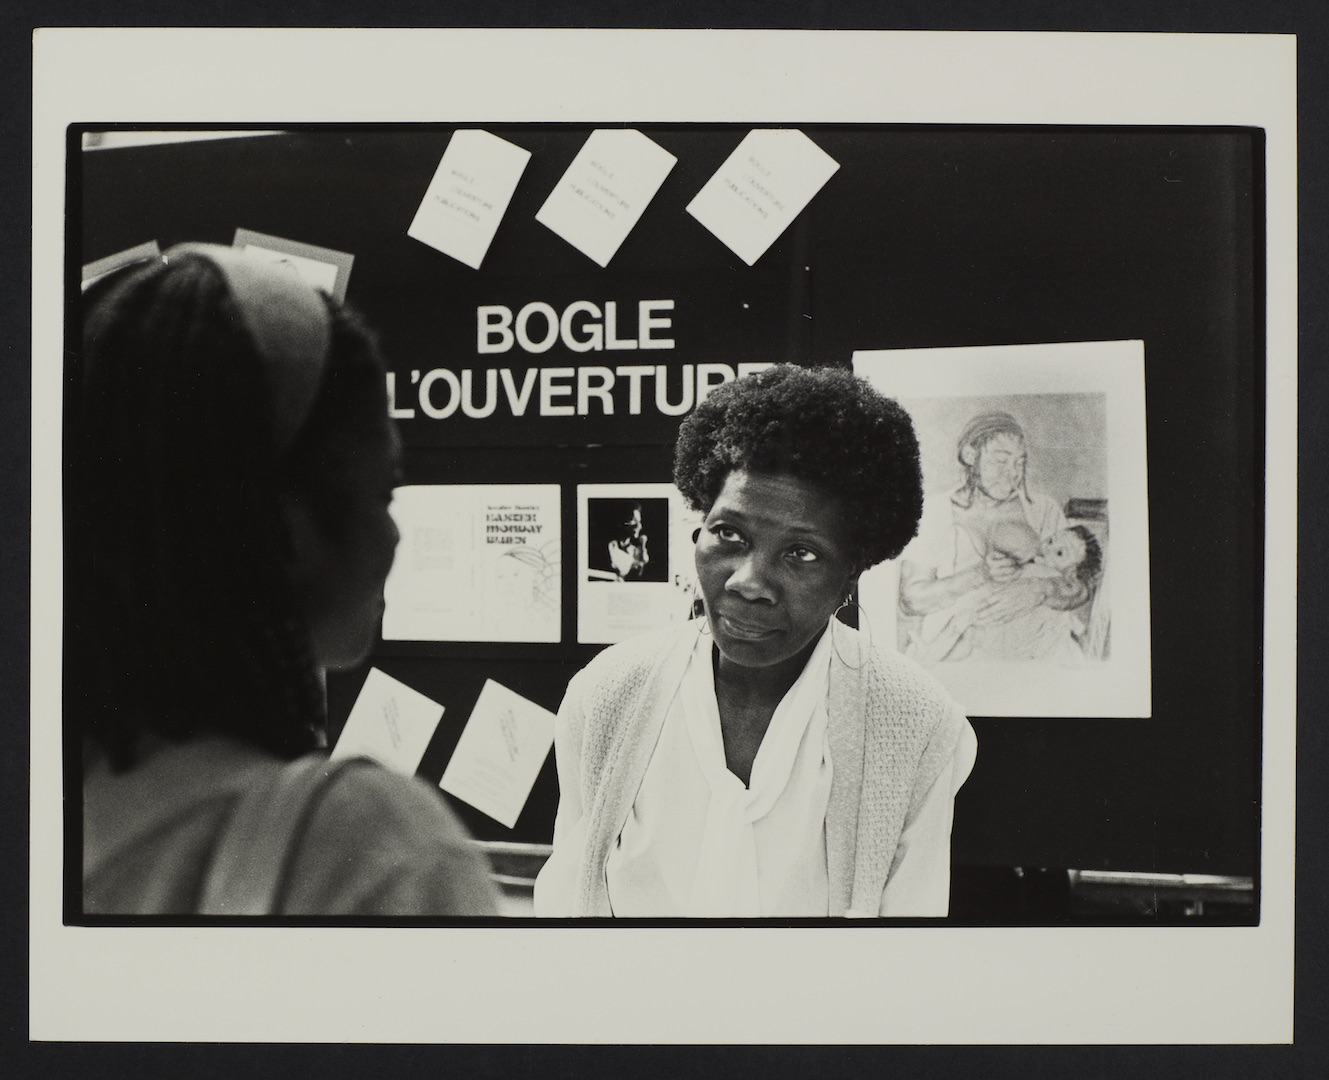 04 Jessica Huntley at Bogle-L'Ouverture Publications bookstall. c1980s. Huntley Archives at London M